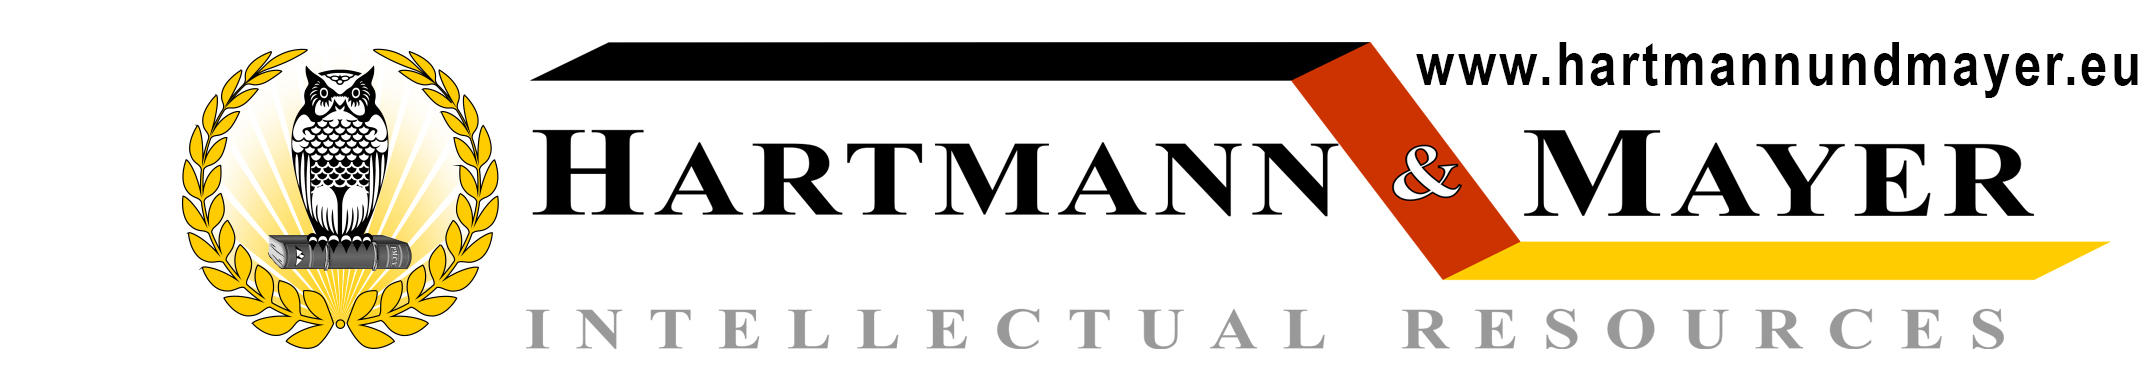 Hartmann und Mayer – Intellectual Resources